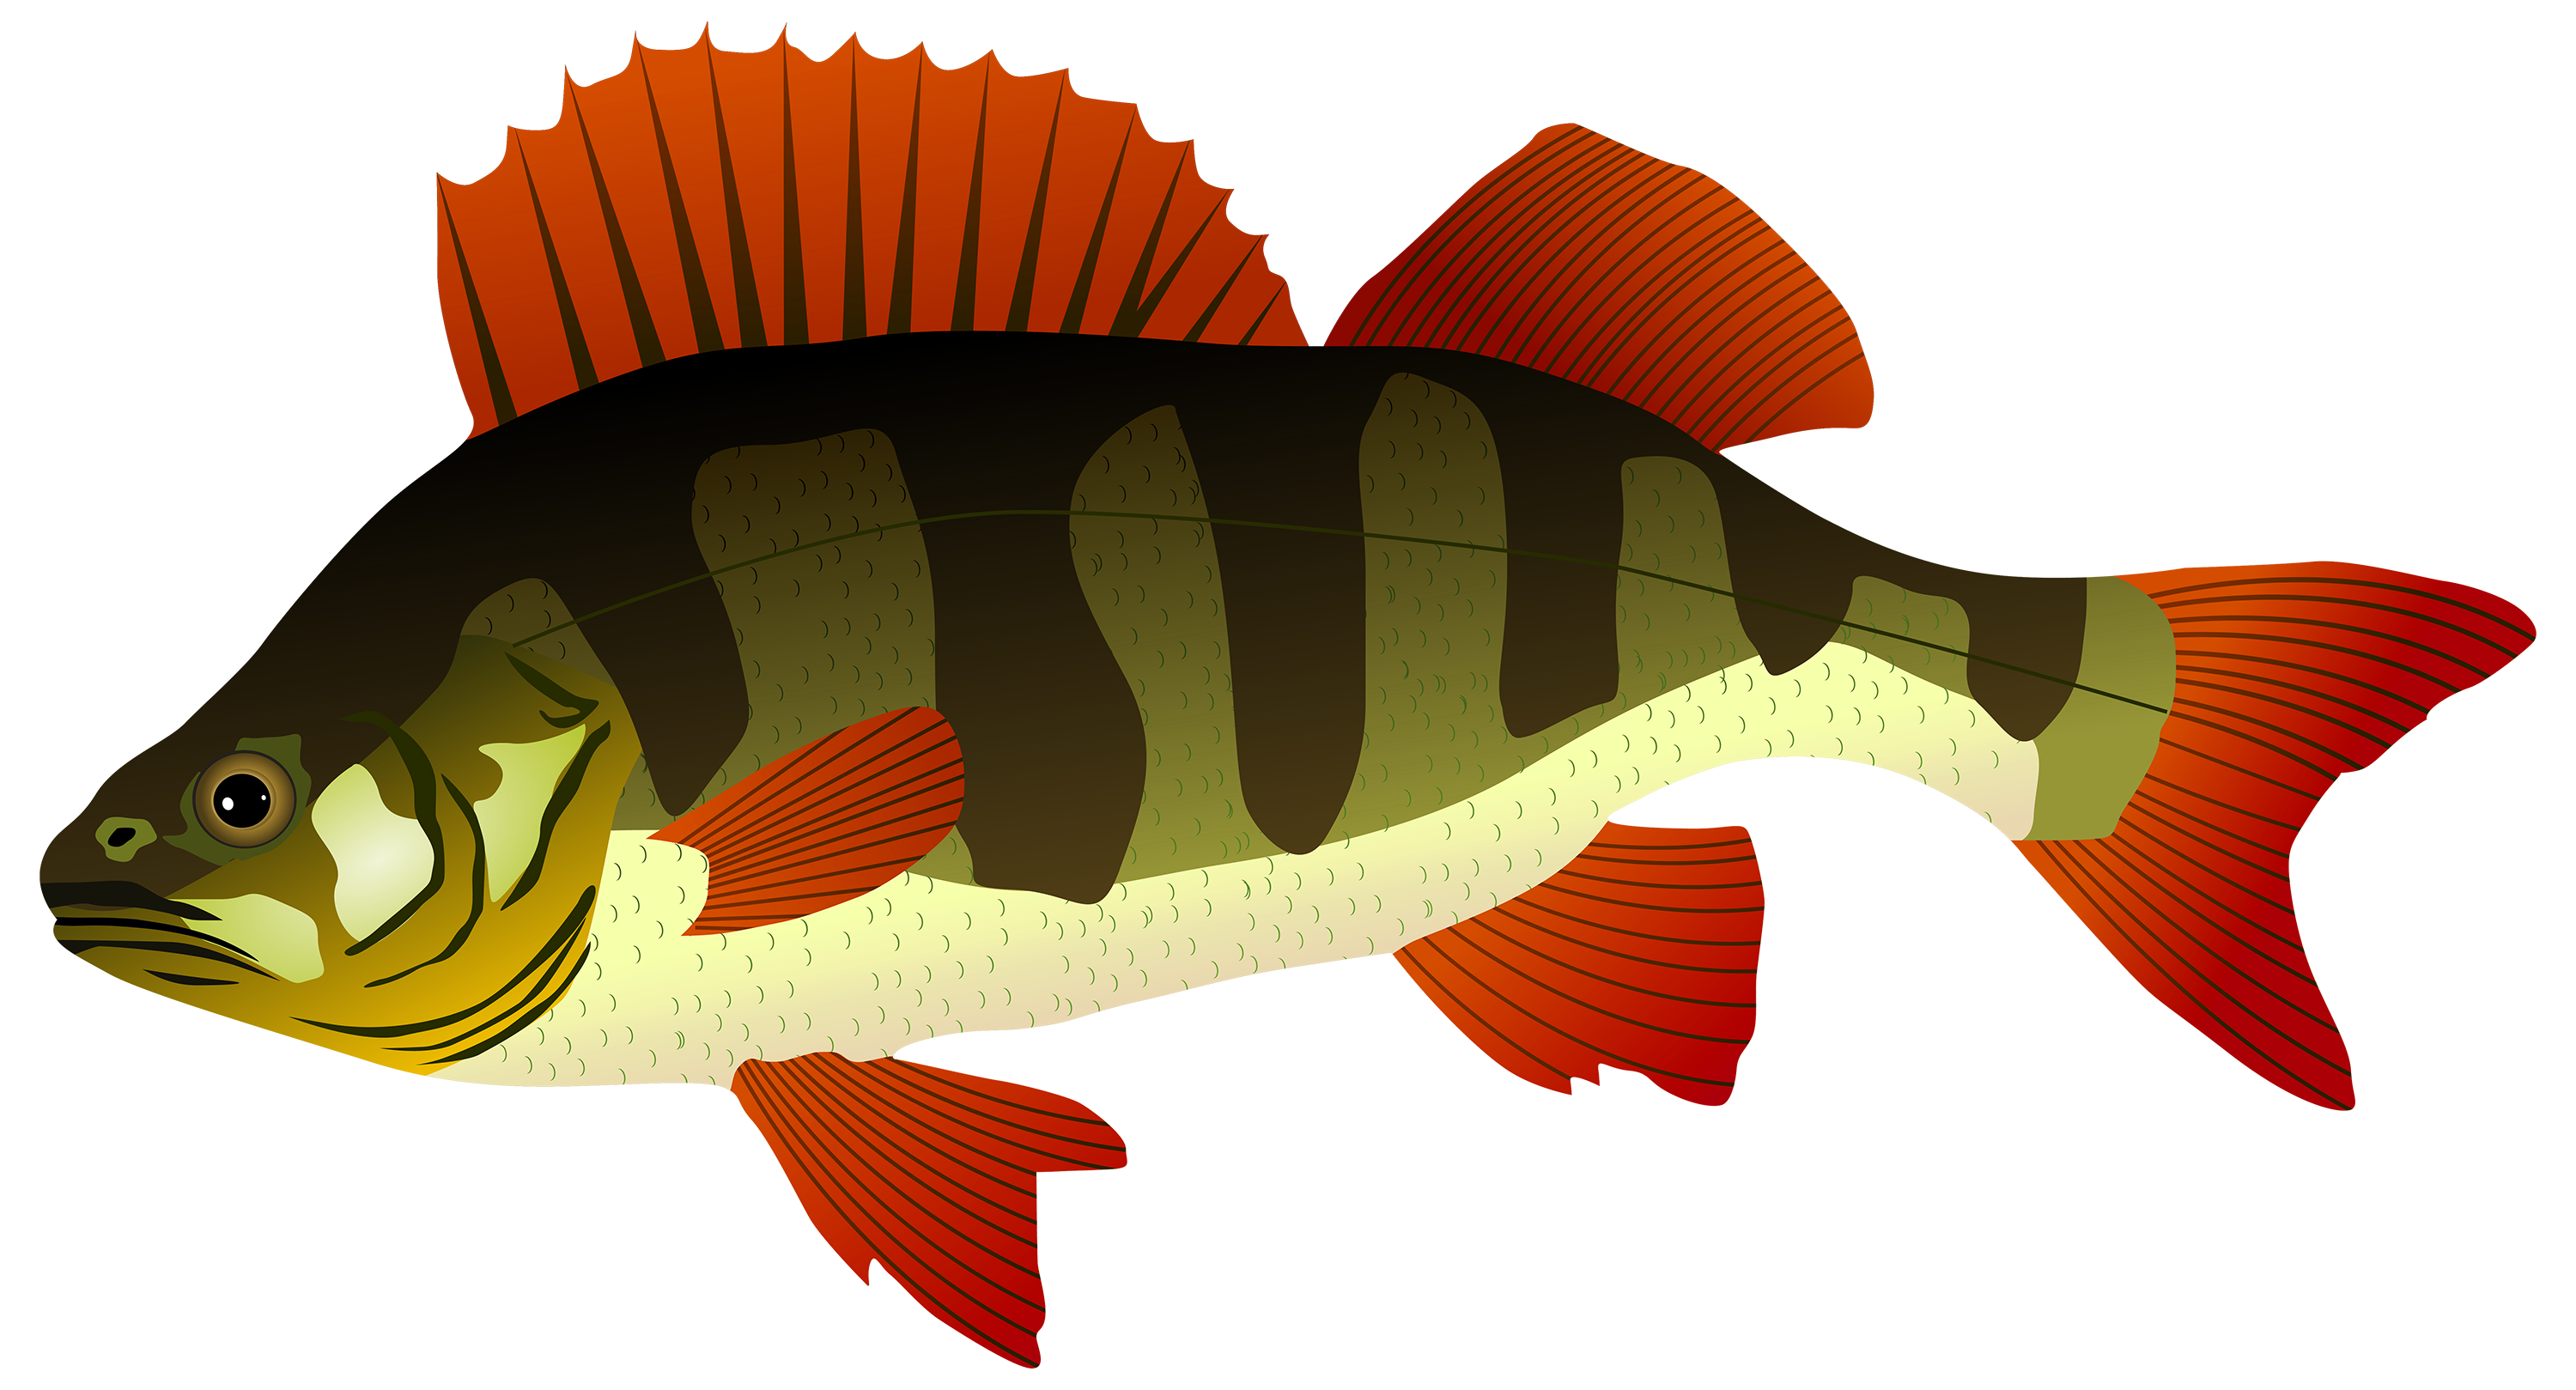 Fish balloon clipart svg download Bass Fish Clipart at GetDrawings.com | Free for personal use Bass ... svg download